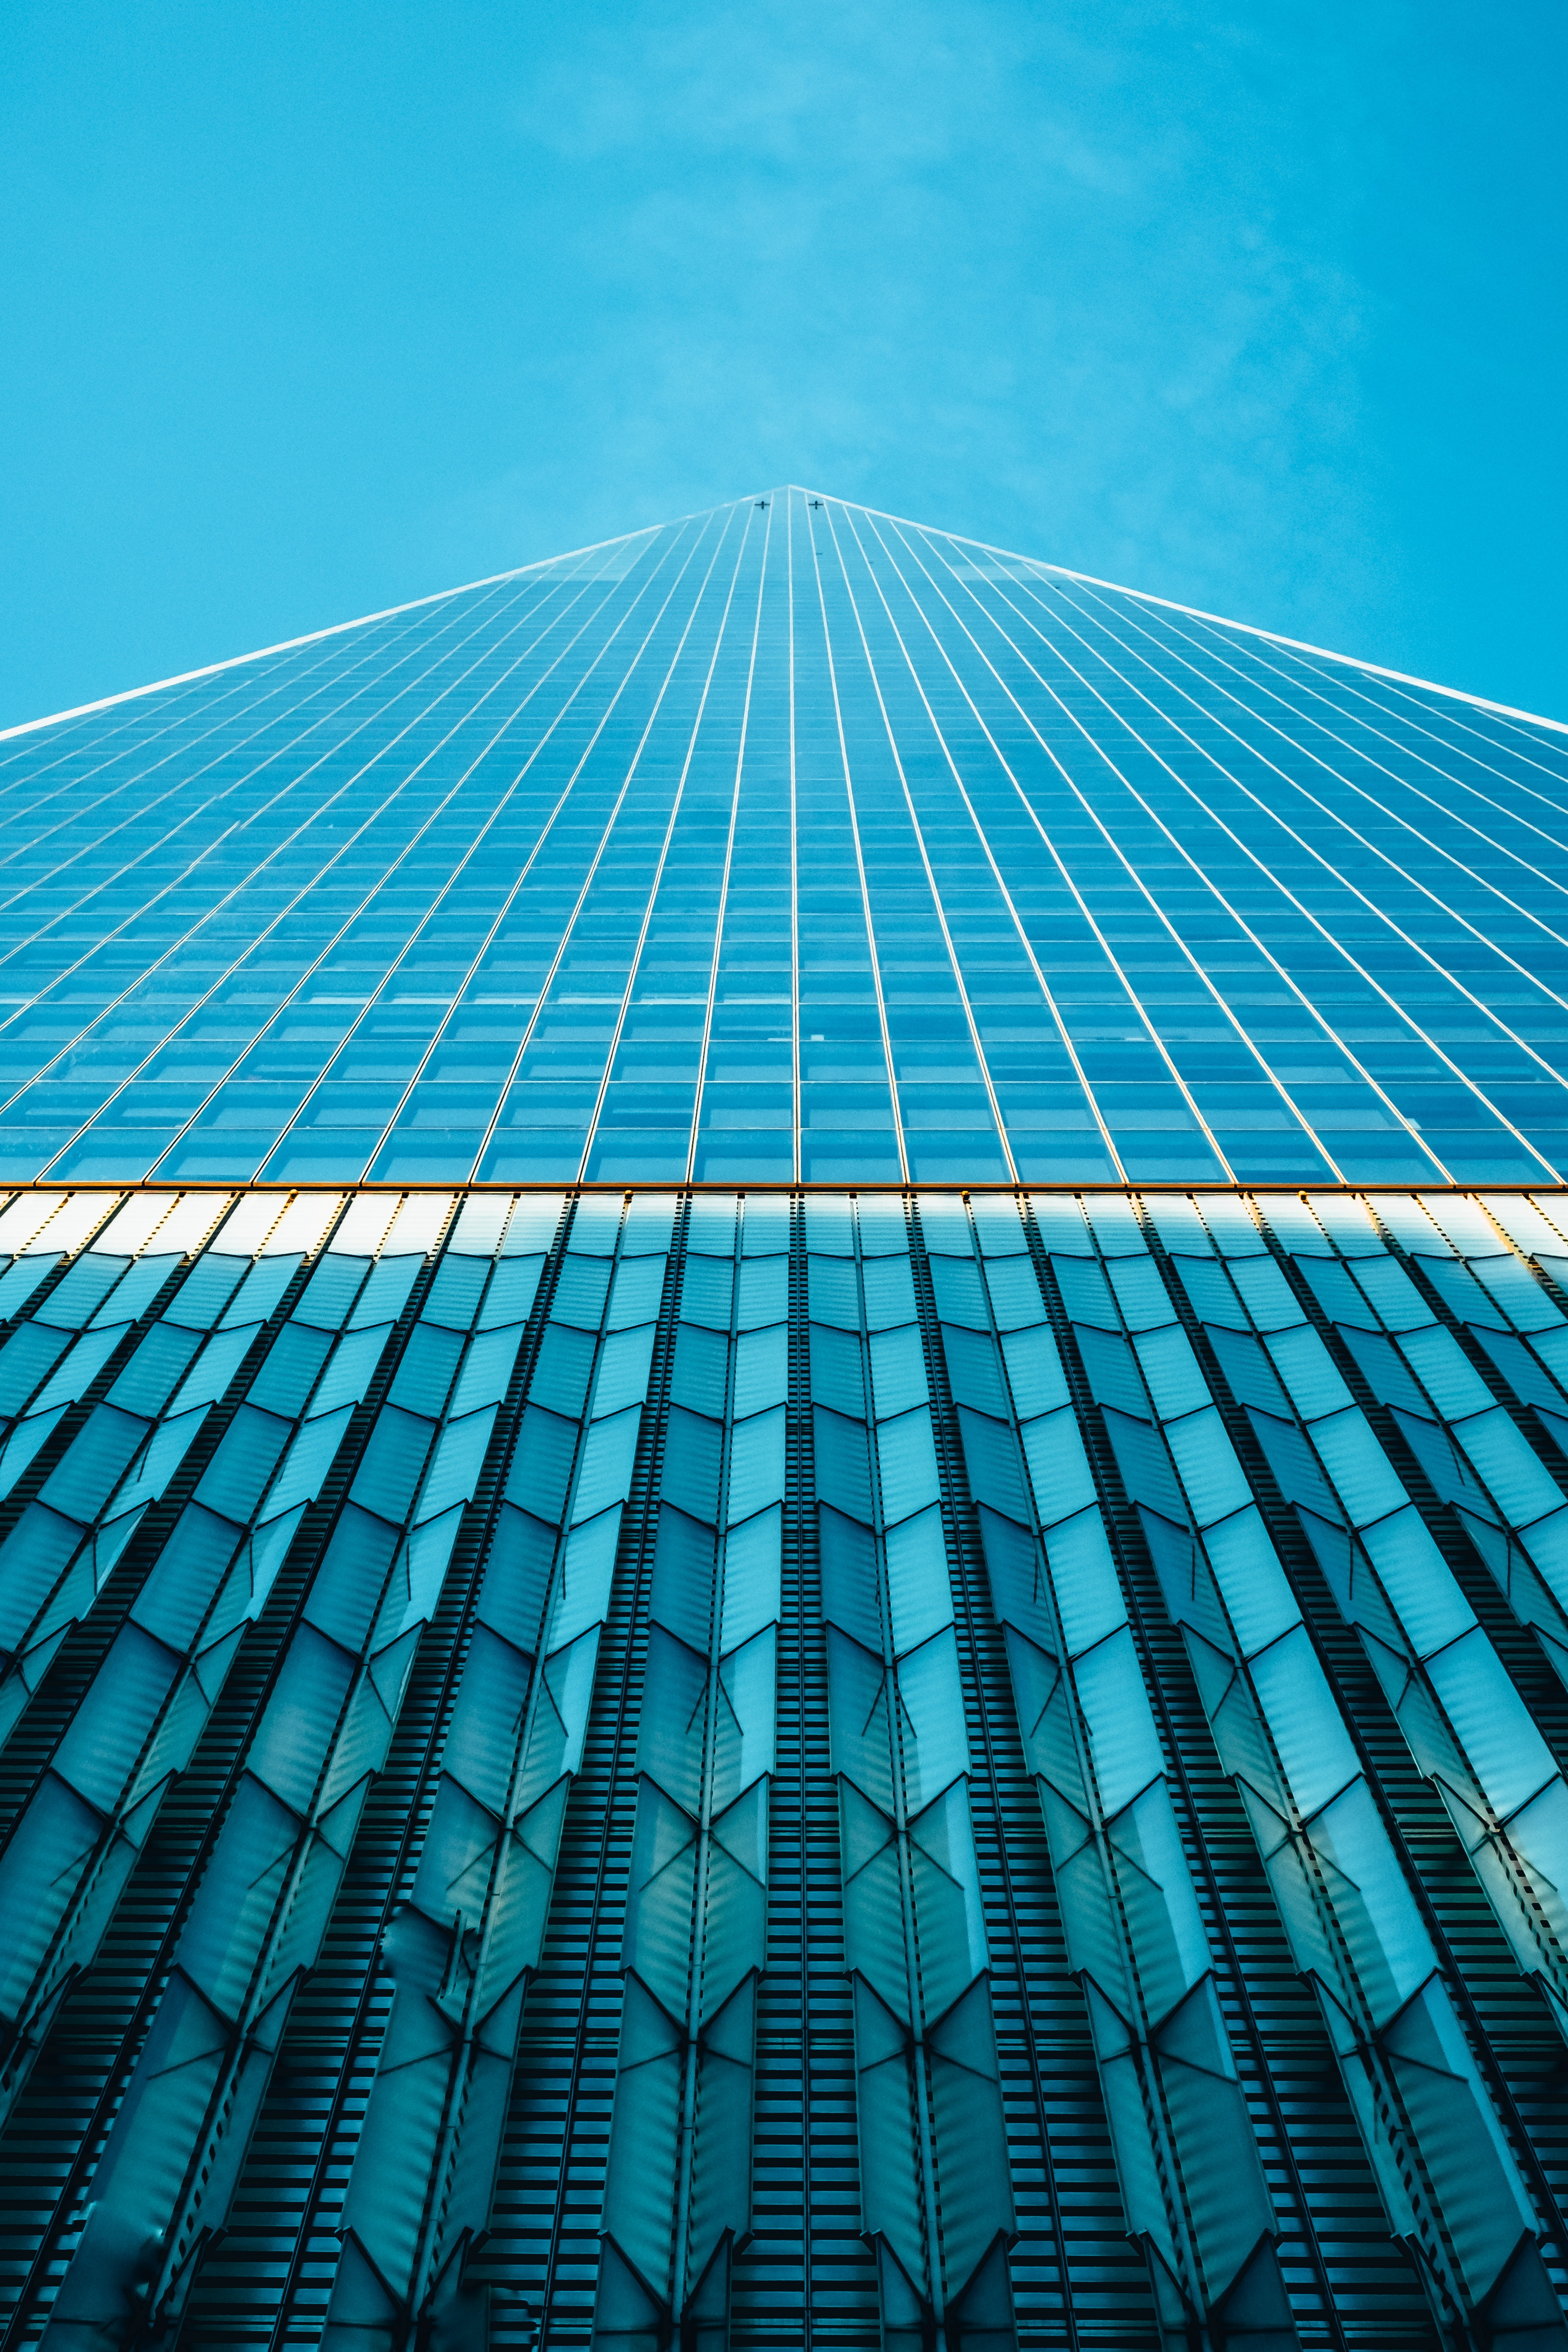 worm's eye view of glass buildings